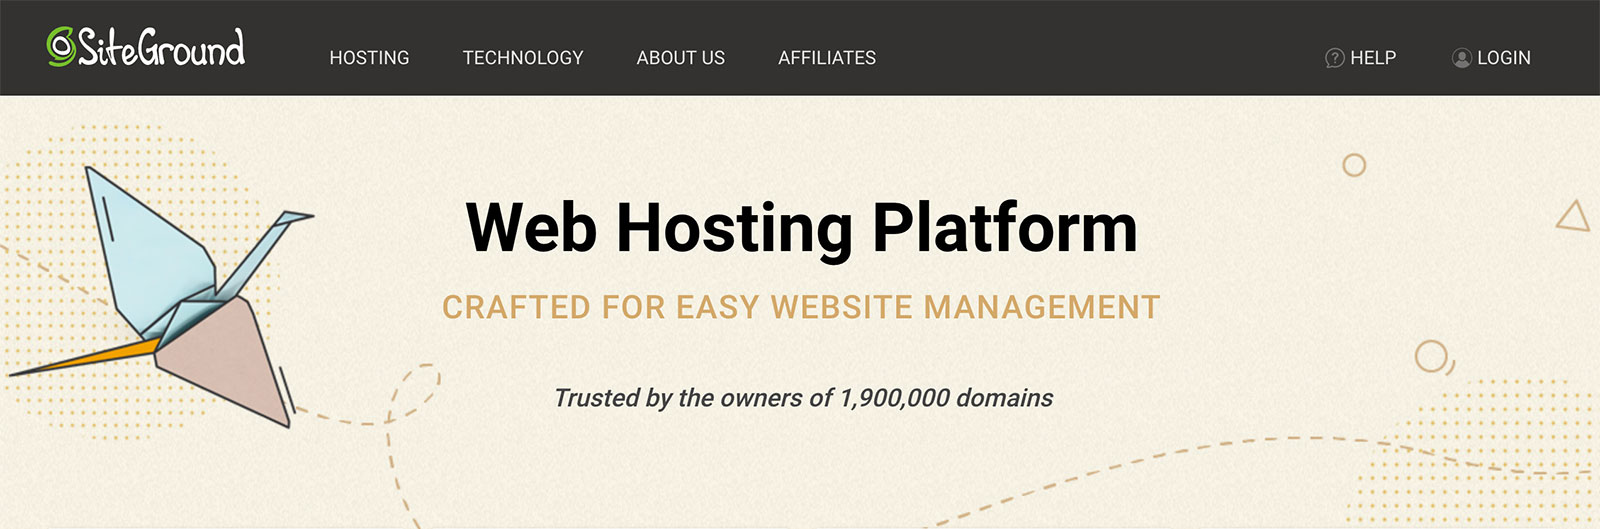 How To Have A Test WordPress Website Using Siteground